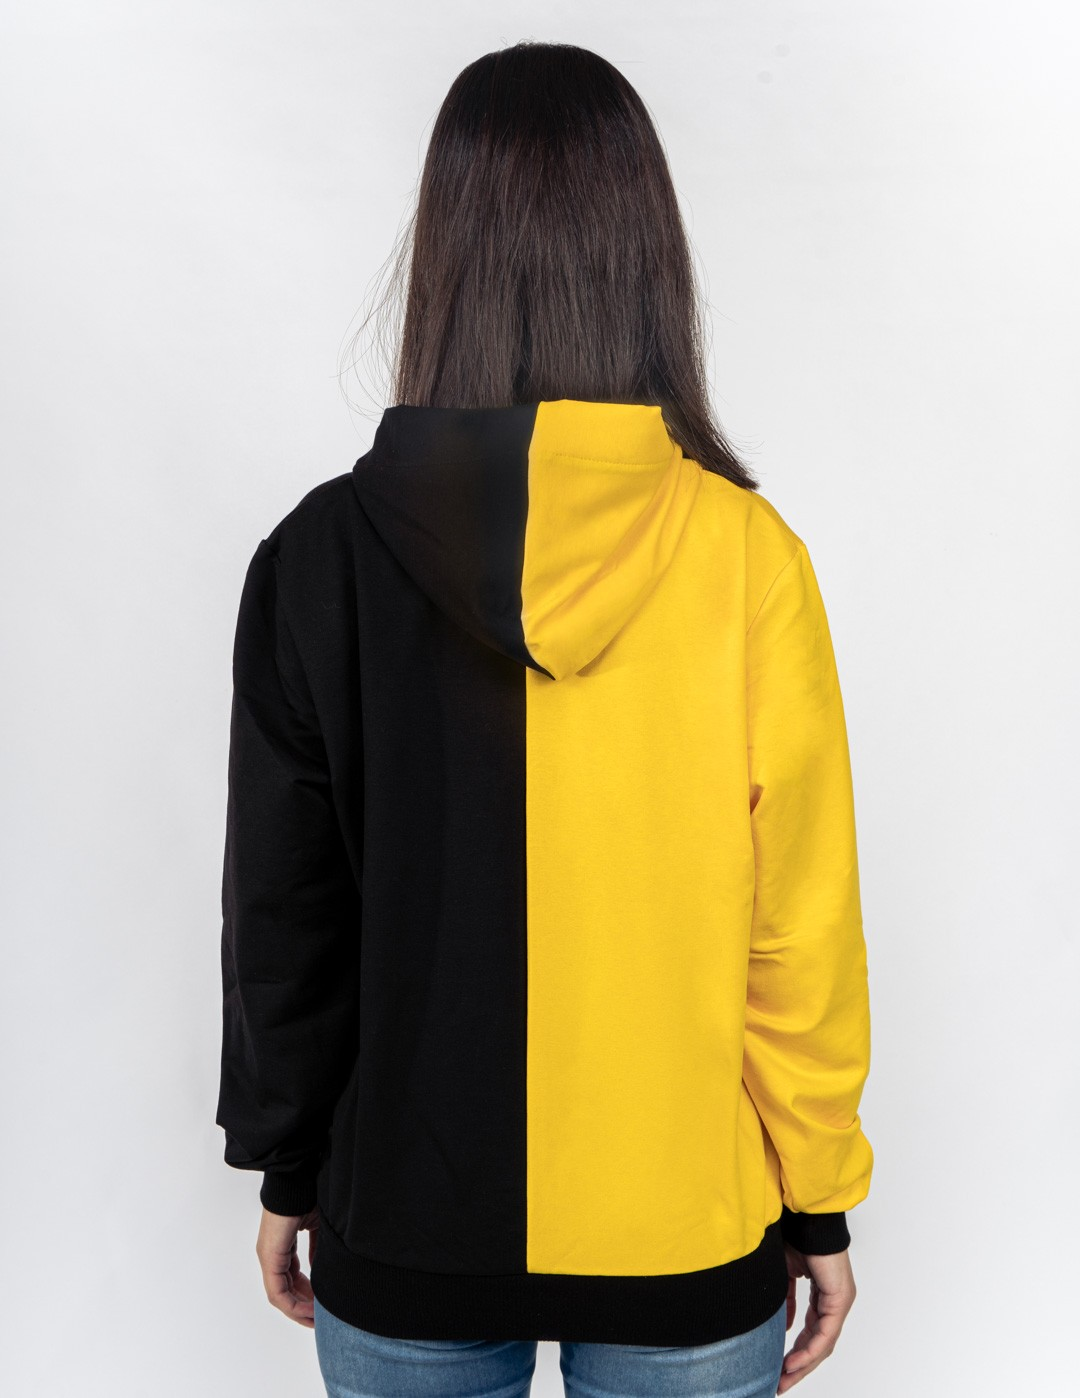 Hoodie DOUBLE FACE Kung-Fu Master Yellow/Black